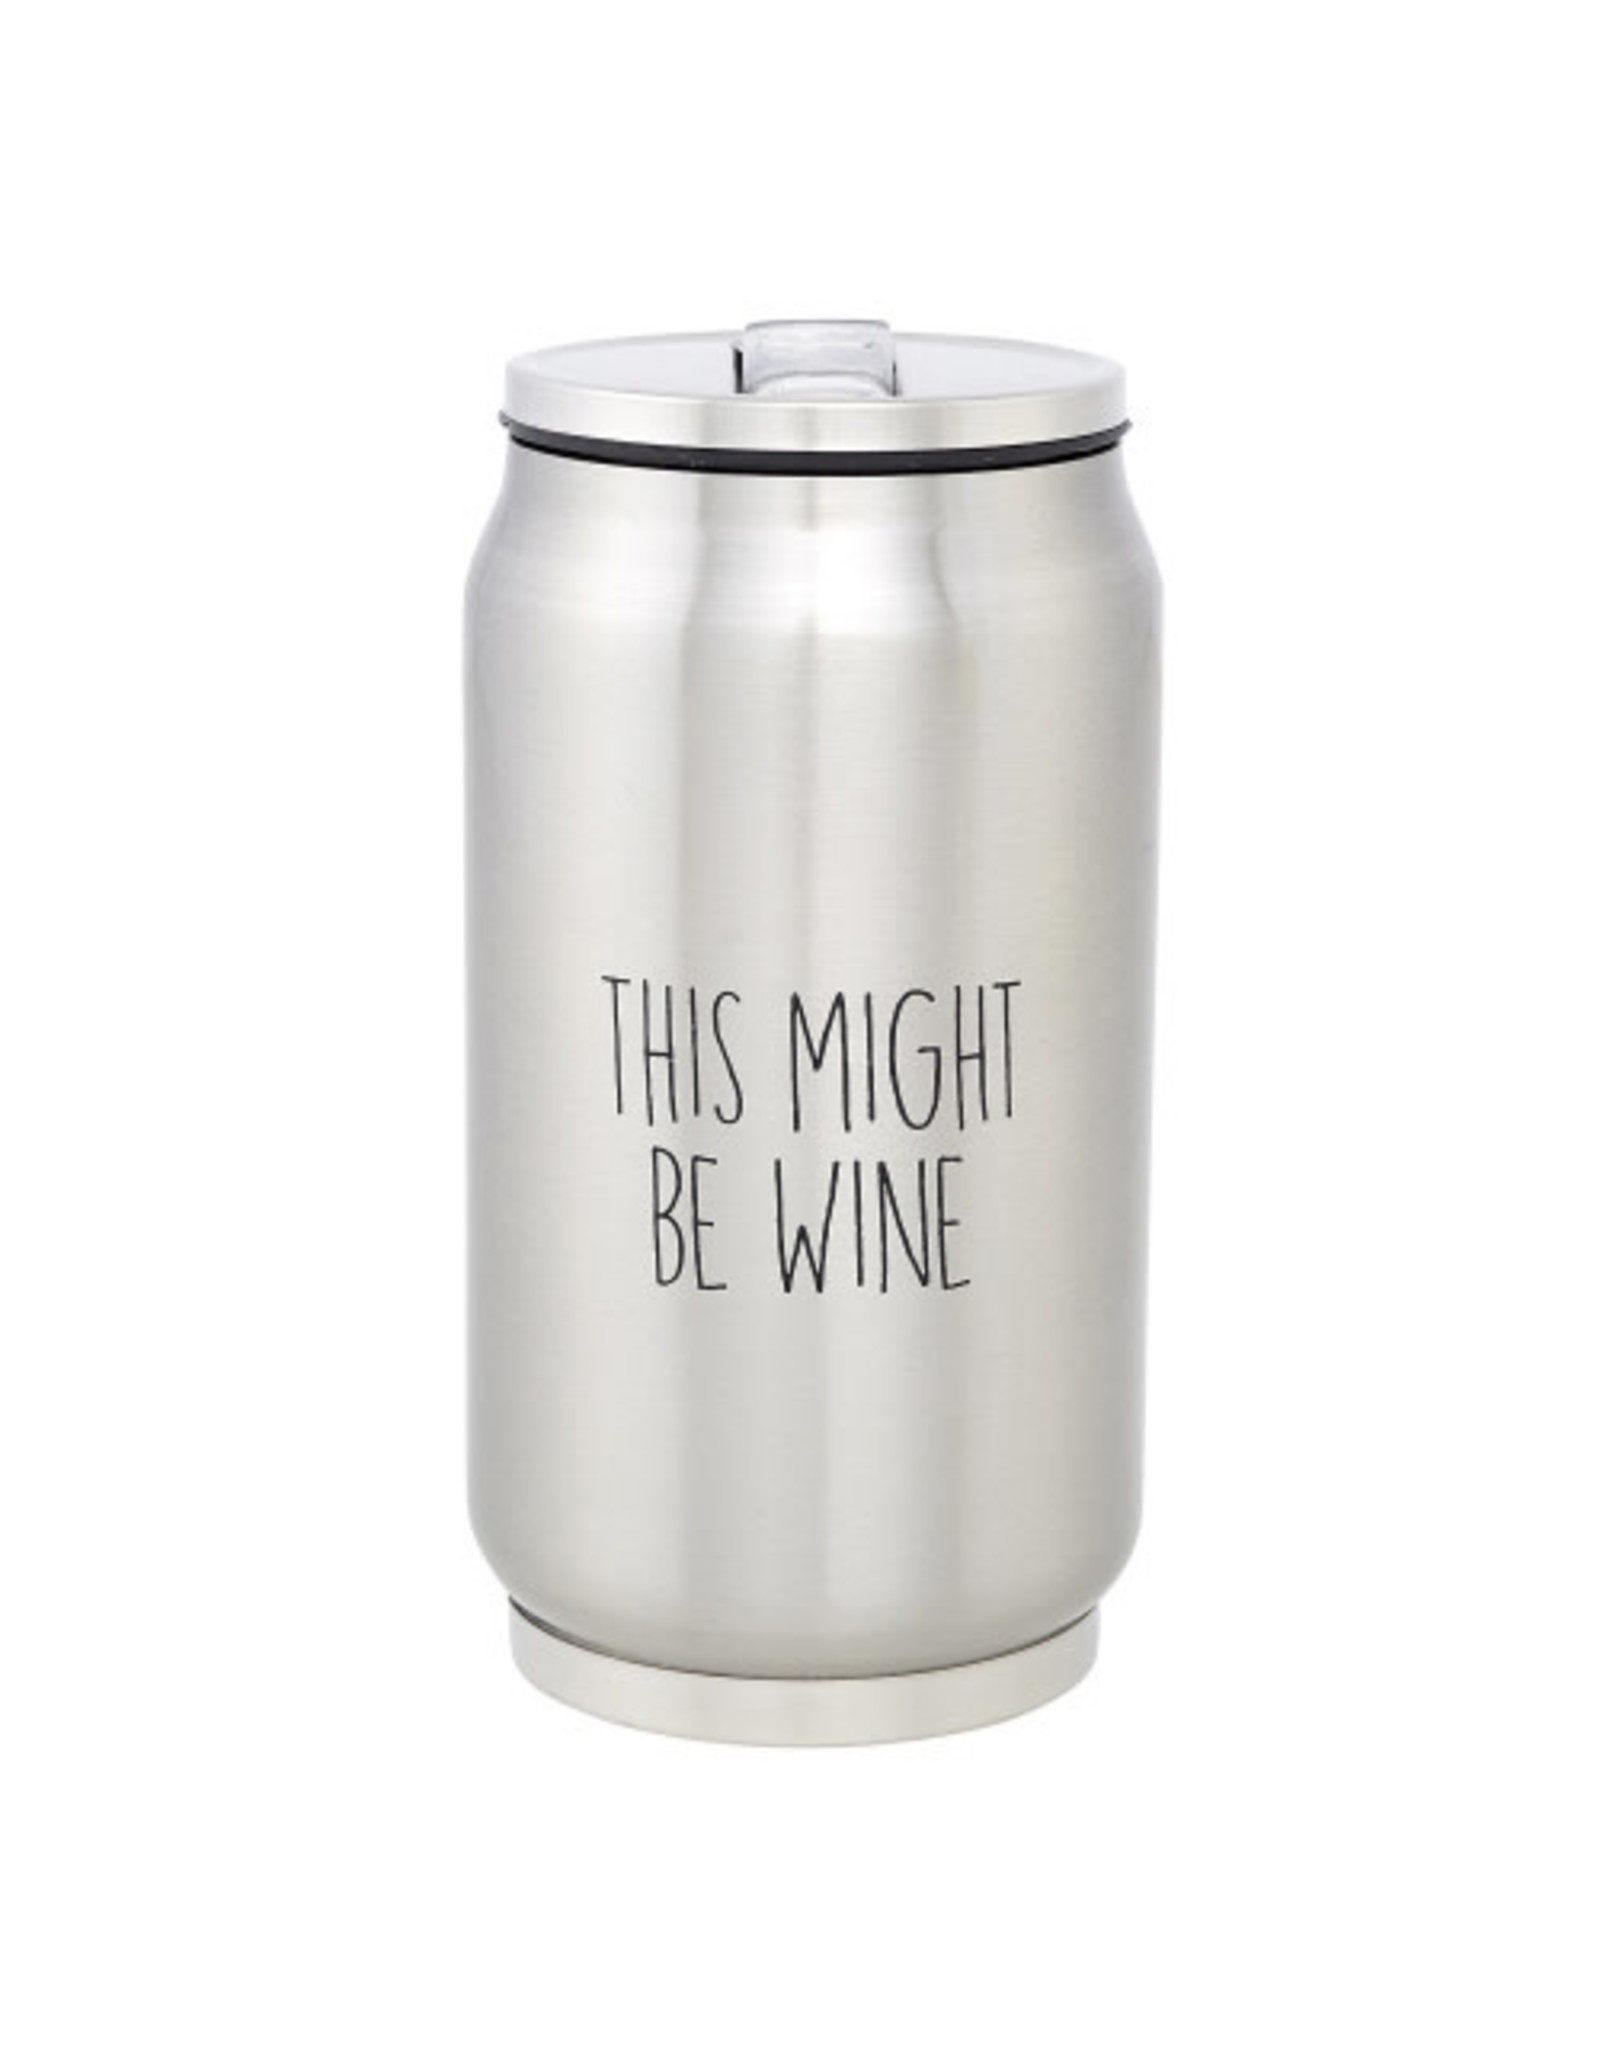 Creative Brands Stainless Steel Can, This Might Be Wine